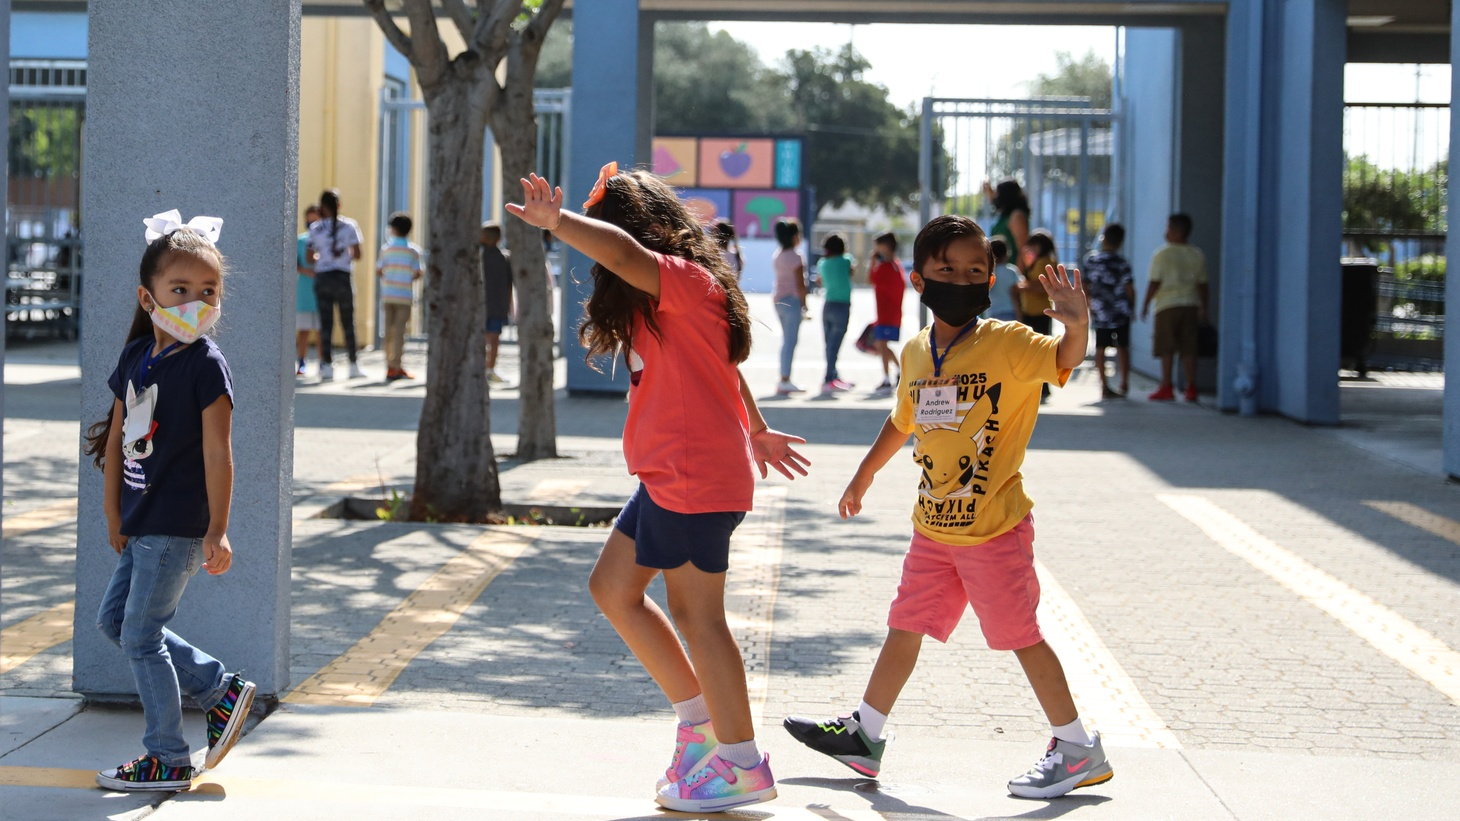 Students wave to their friends as they line up to receive a snack at Montara Avenue Elementary School in South Gate, August 16, 2021.